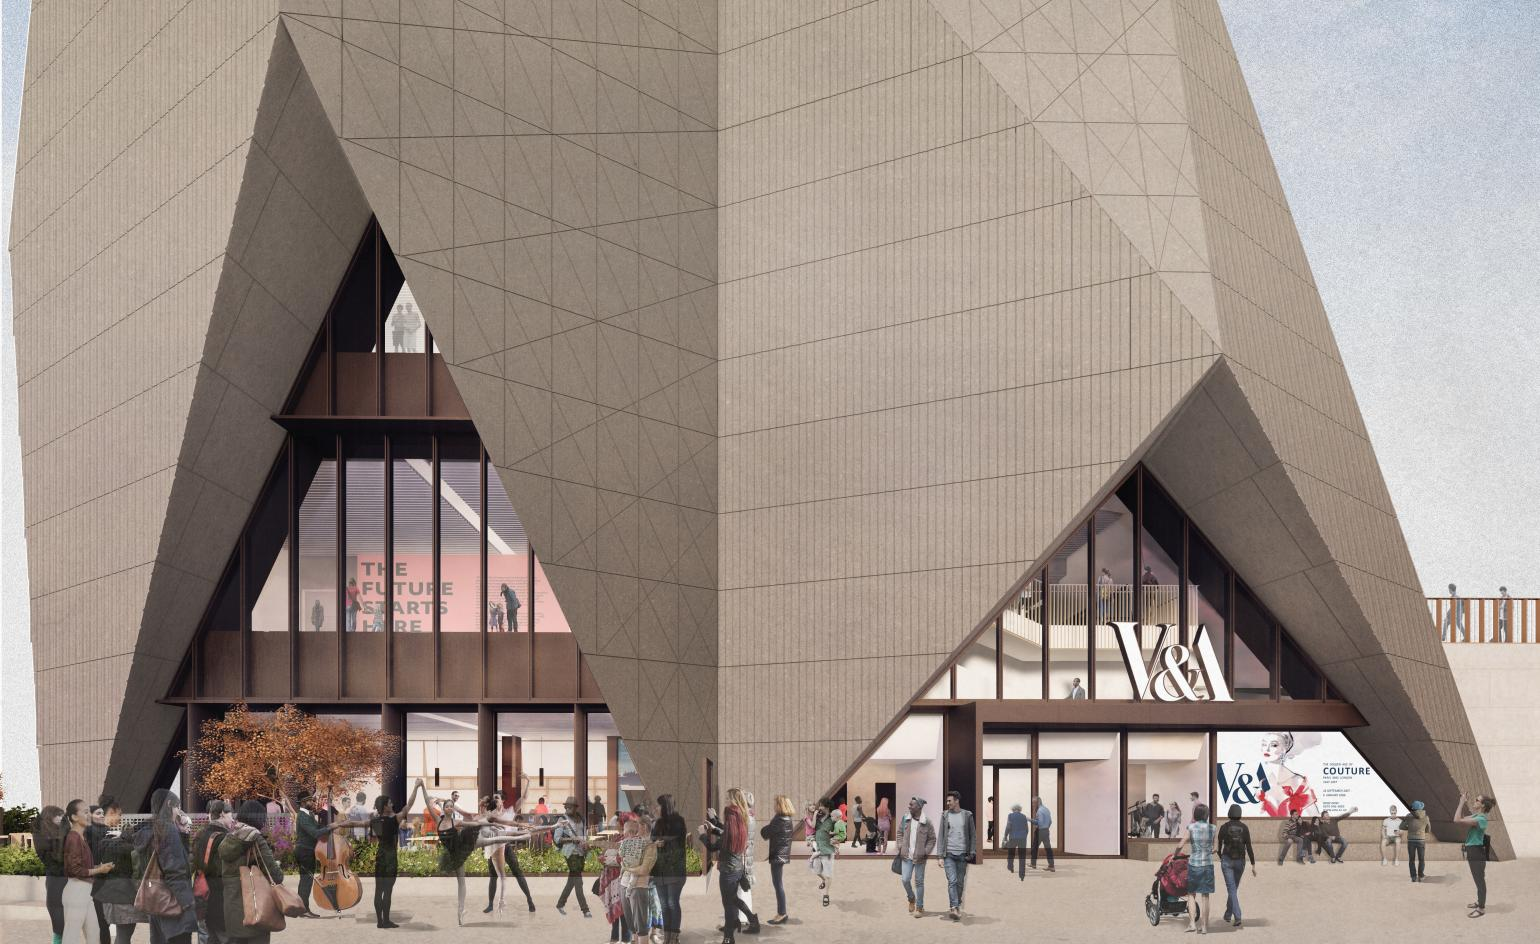 V&A unveils two new designs for east London cultural hub